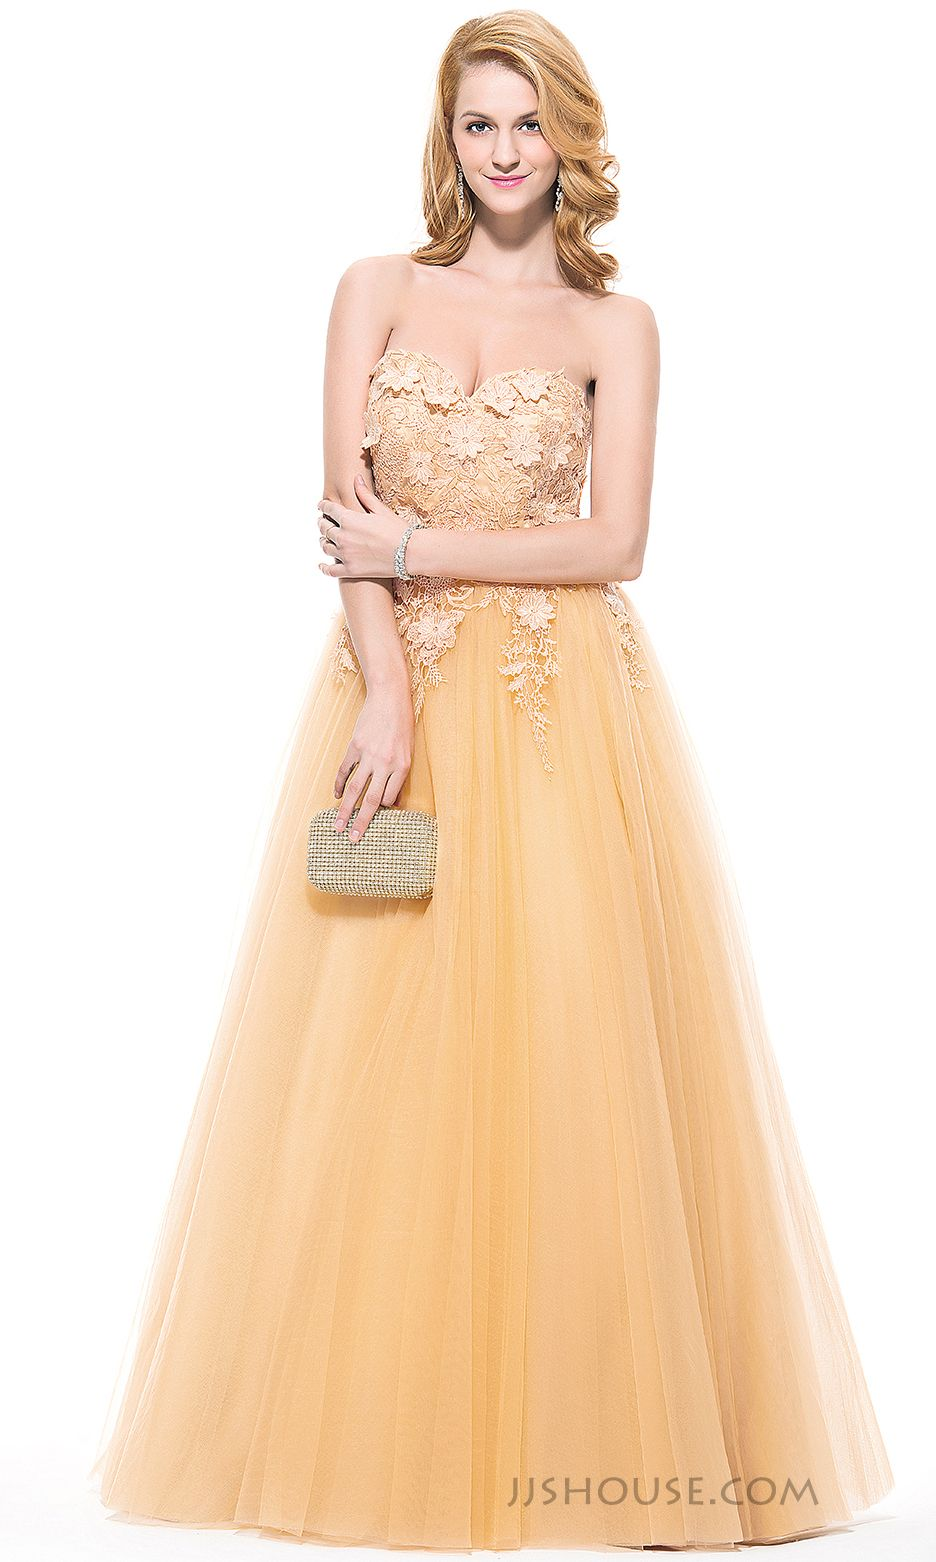 Spring is blooming put on this prom dress and date with spring